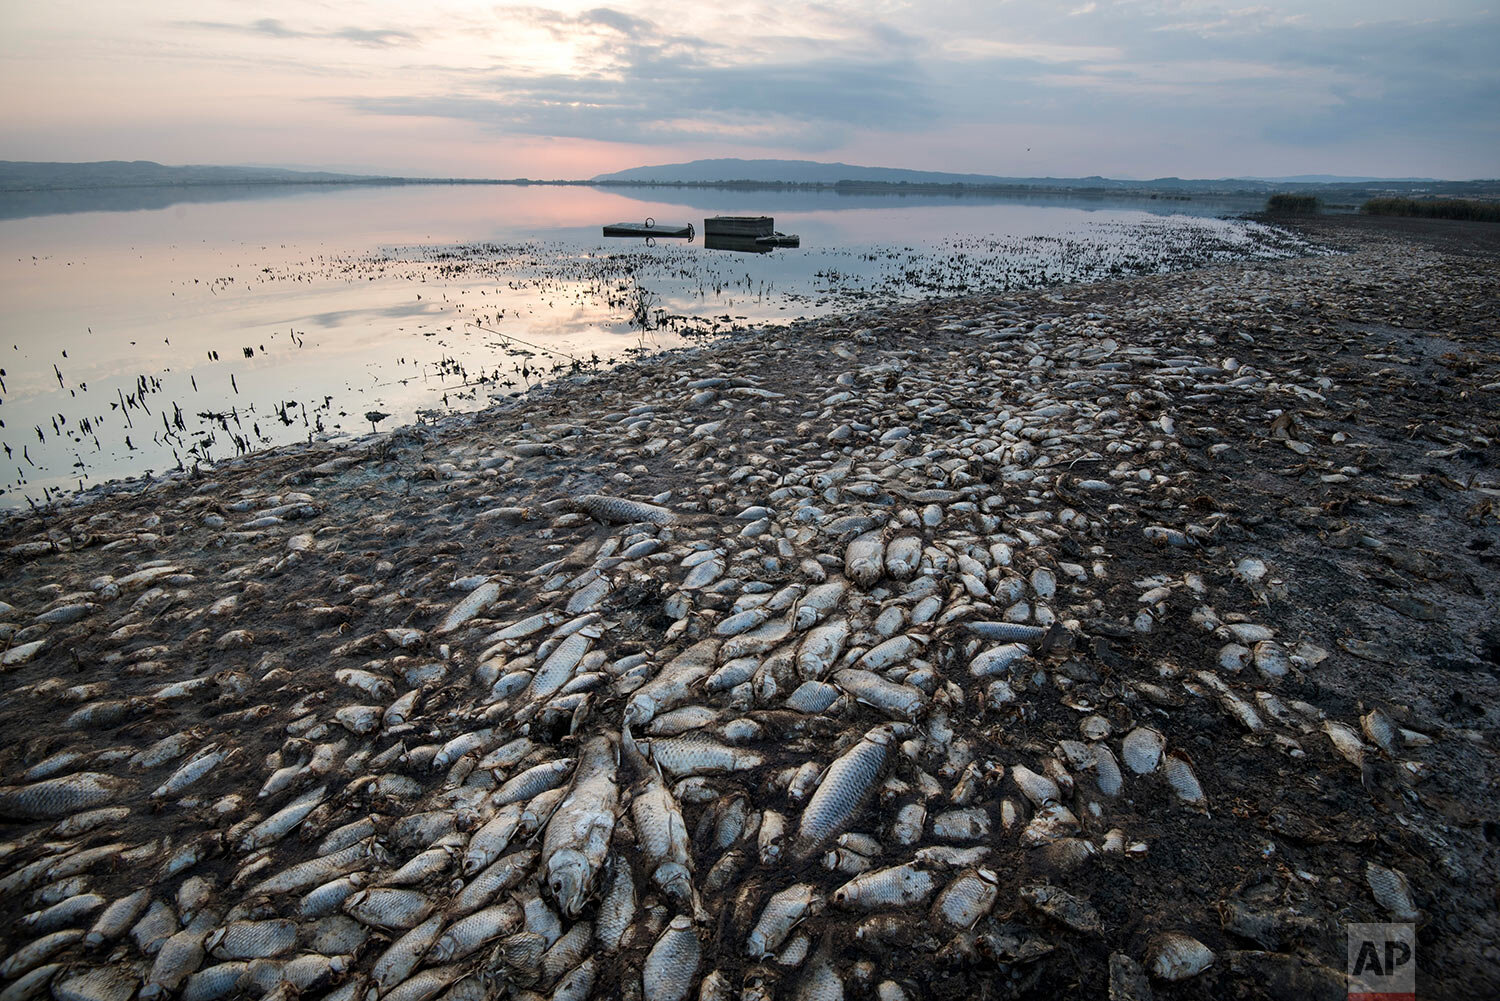 Dead fish lie on the shores of Koroneia Lake in northern Greece, on Thursday, Sept. 19, 2019. Tens of thousands of dead fish are washing up as the water level has plummeted to less than a meter deep (three feet) accompanied by a lack of oxygen in the water. (AP Photo/Giannis Papanikos)